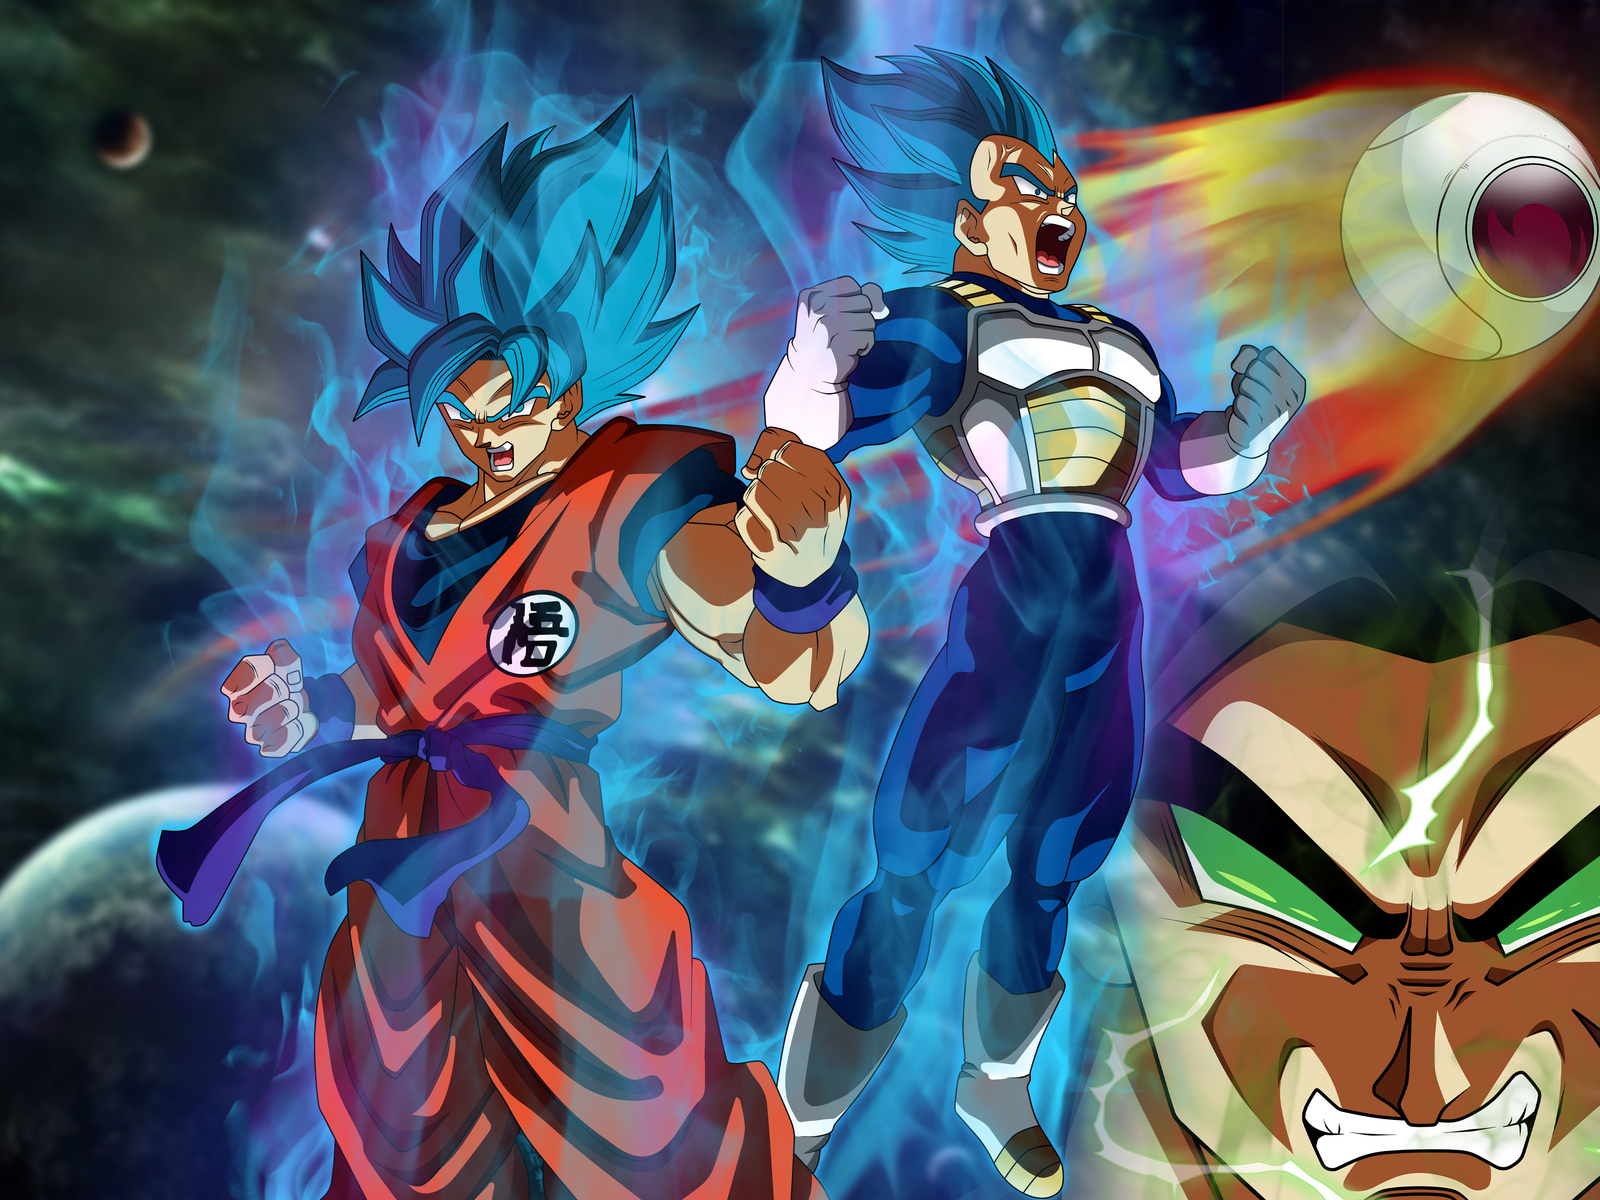 goku-vegeta-dragon-ball-super-5k-uz.jpg